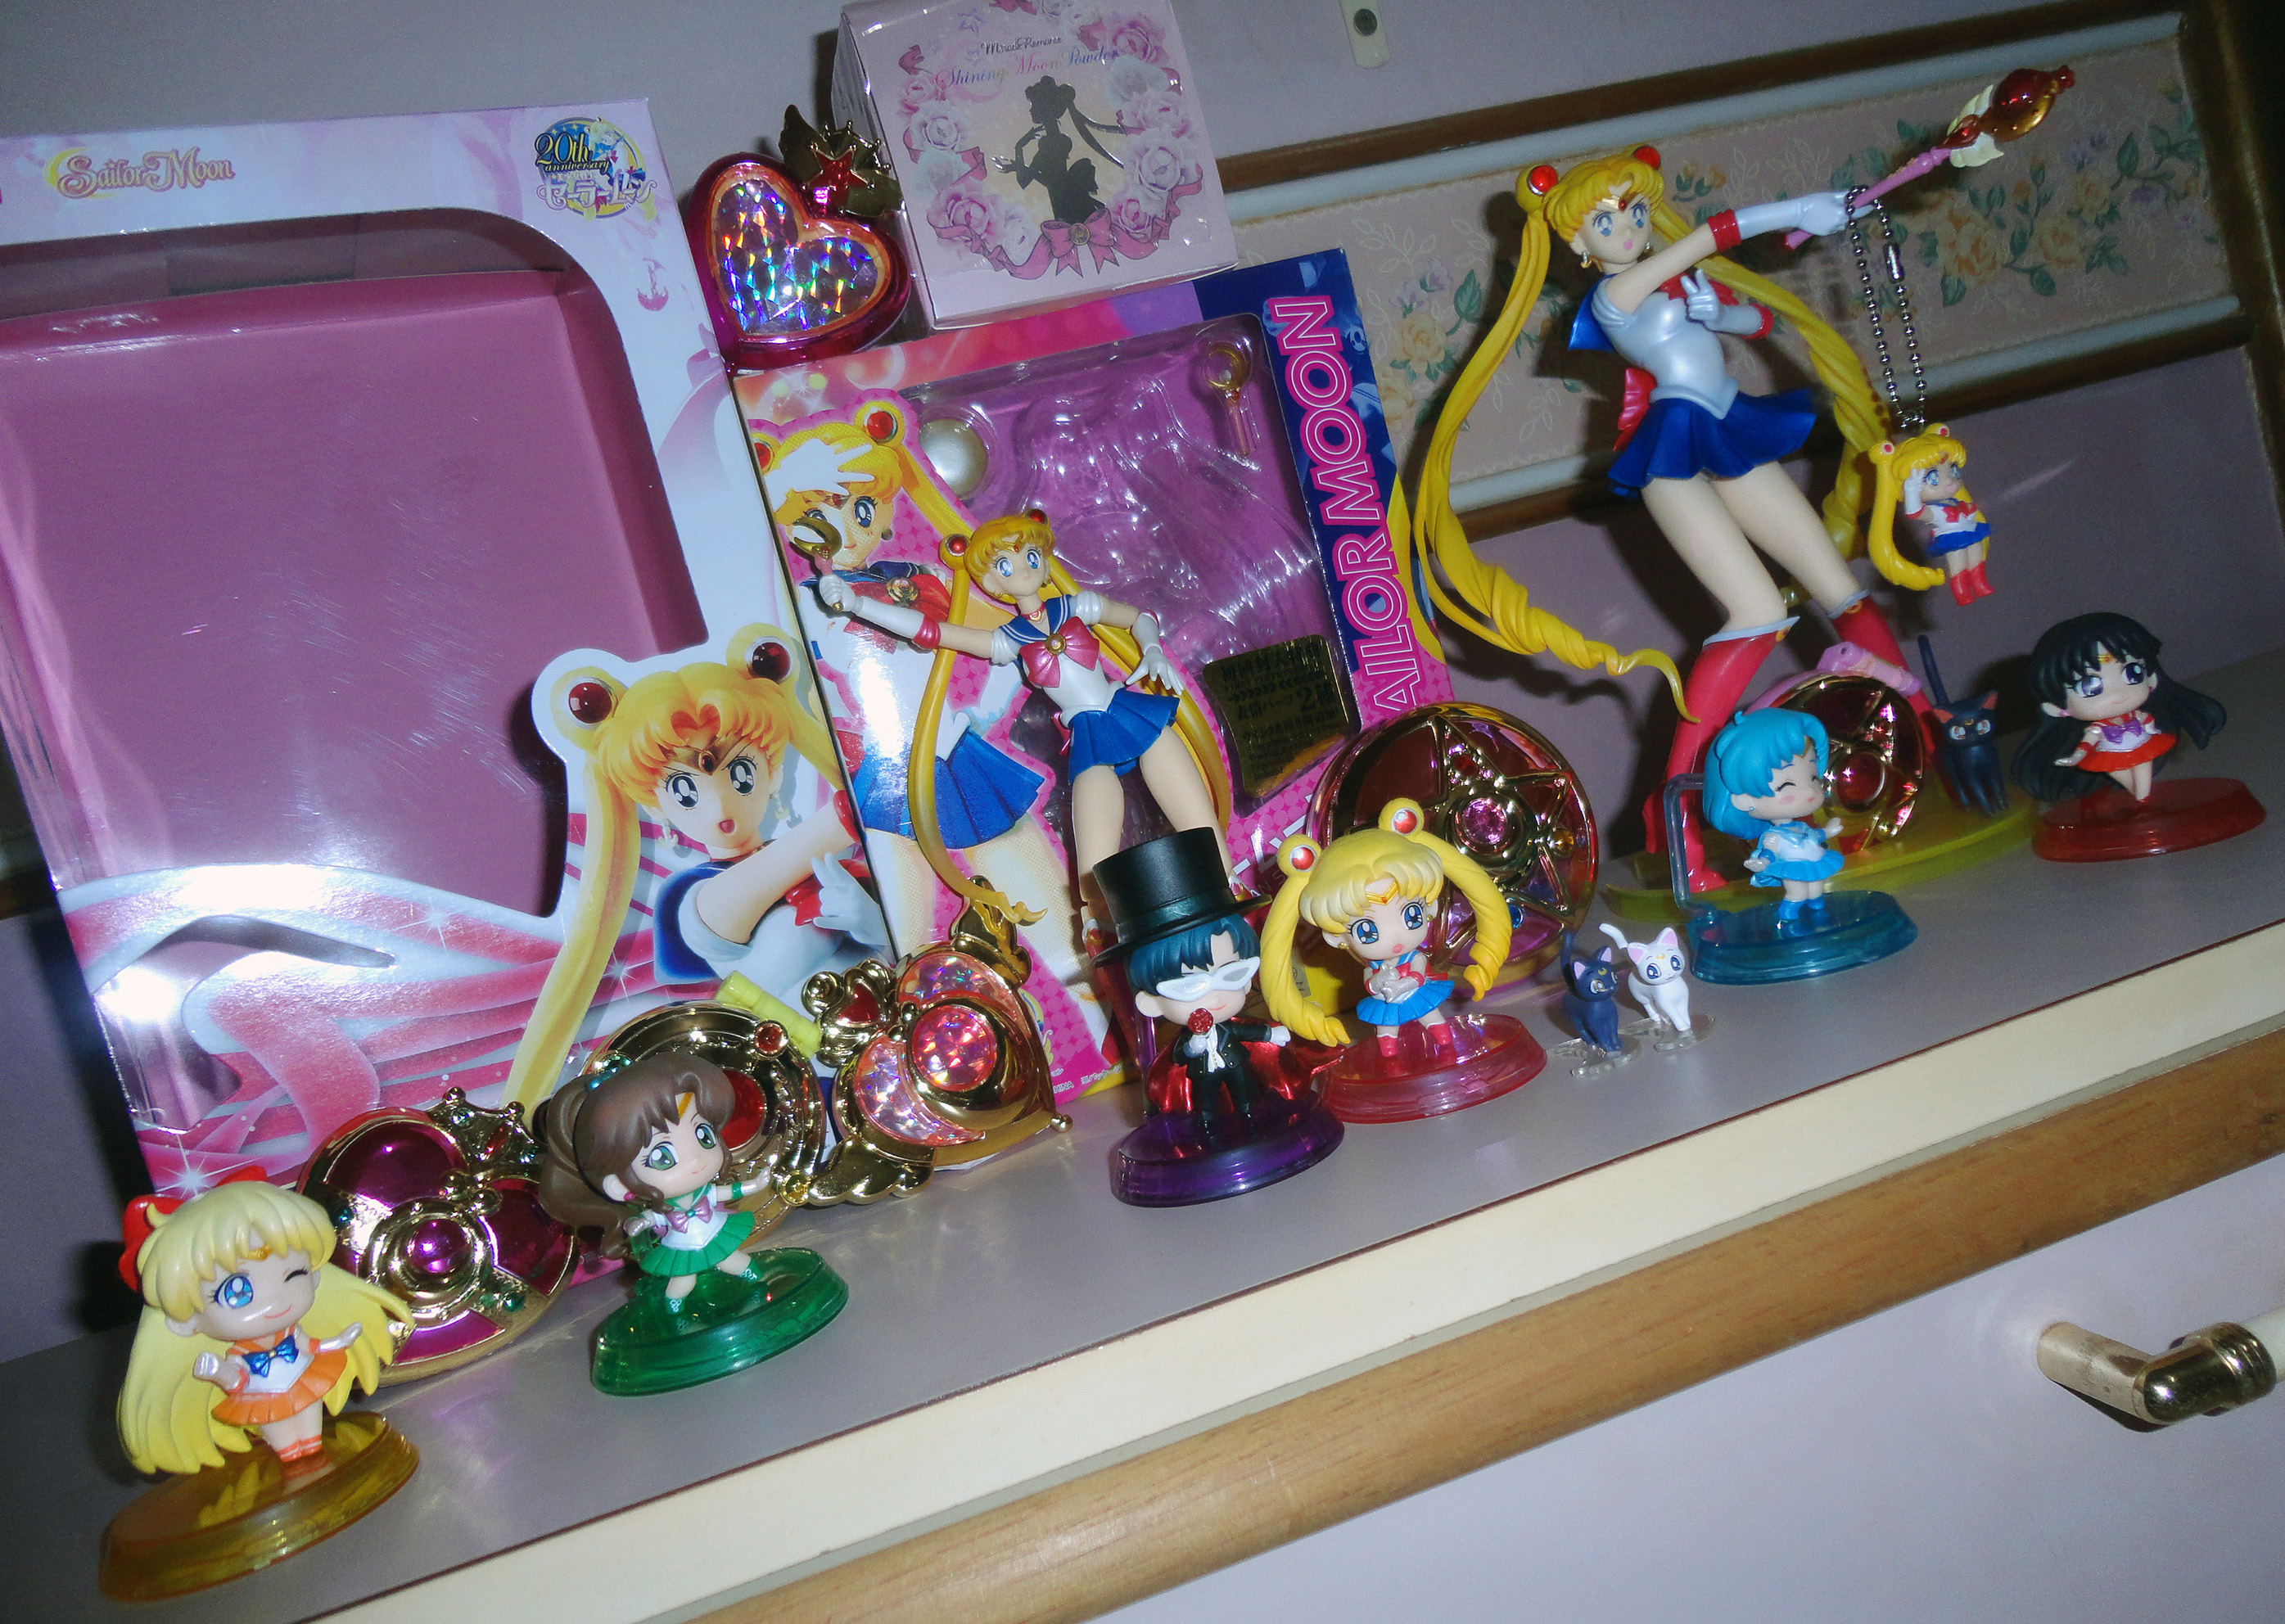 megahouse sailor_moon volks sailor_mars luna bandai sailor_venus compact sailor_mercury s.h.figuarts tuxedo_kamen bishoujo_senshi_sailor_moon toei_animation takeuchi_naoko figuarts_zero petit_chara_land bishoujo_senshi_sailor_moon_r cosmetics miracle_romance bishoujo_senshi_sailor_moon_petit_chara_land sailor_moon_20th_anniversary_compact_gashapon